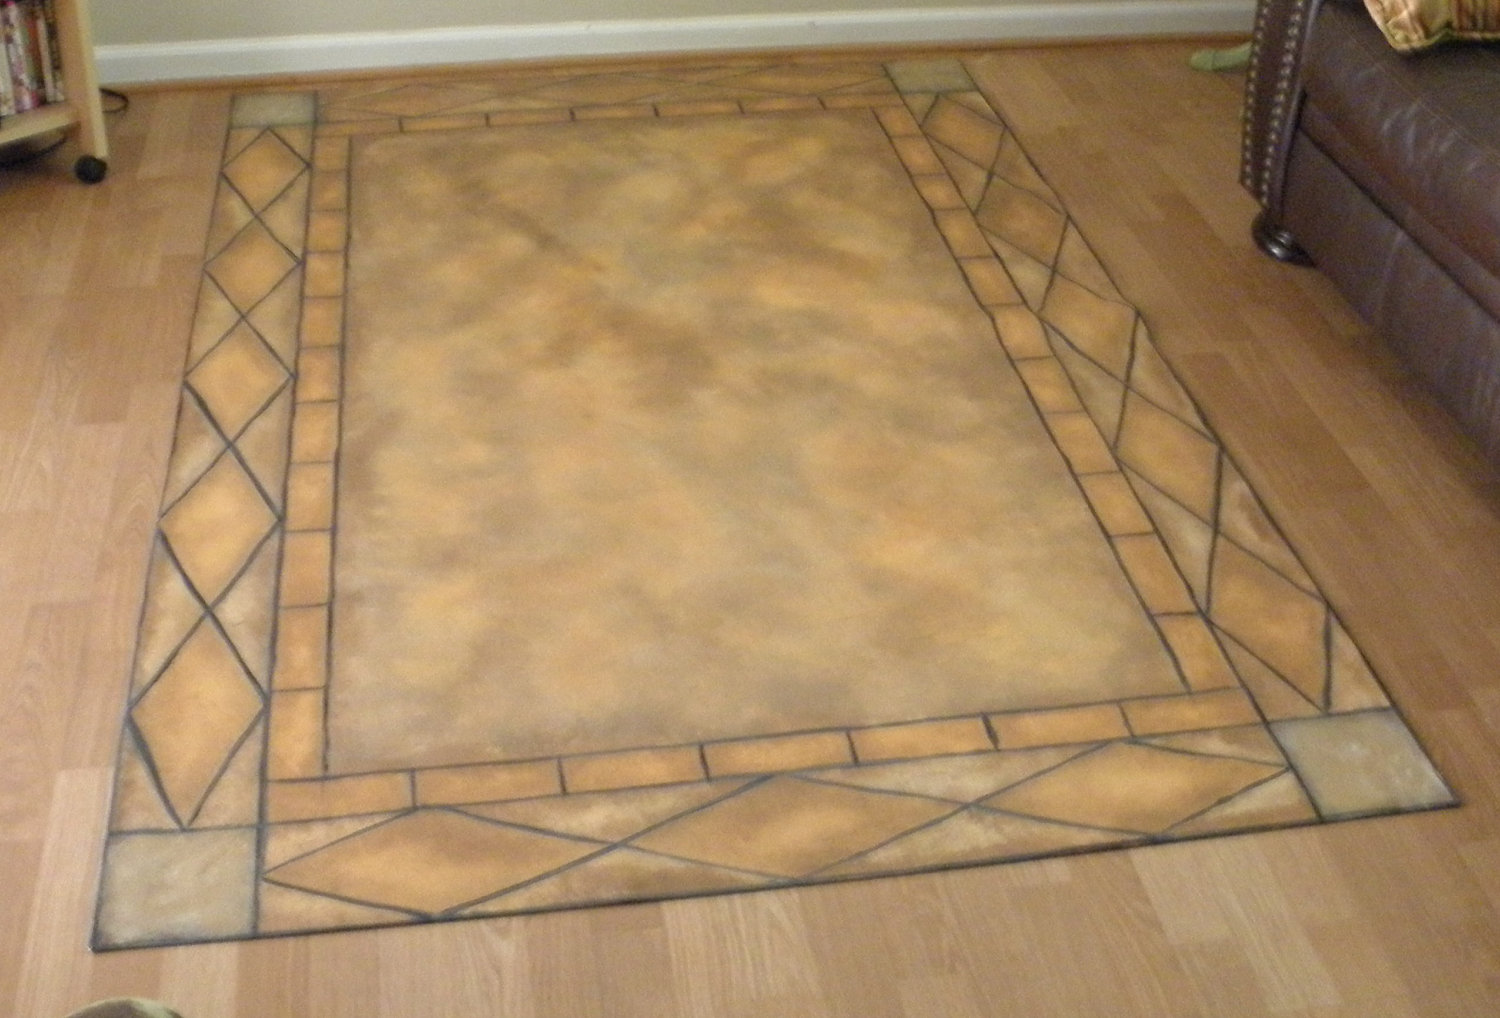 Tuscan Tile Floorcloth Canvas Rug Hand Painted by steponitart 1500x1018